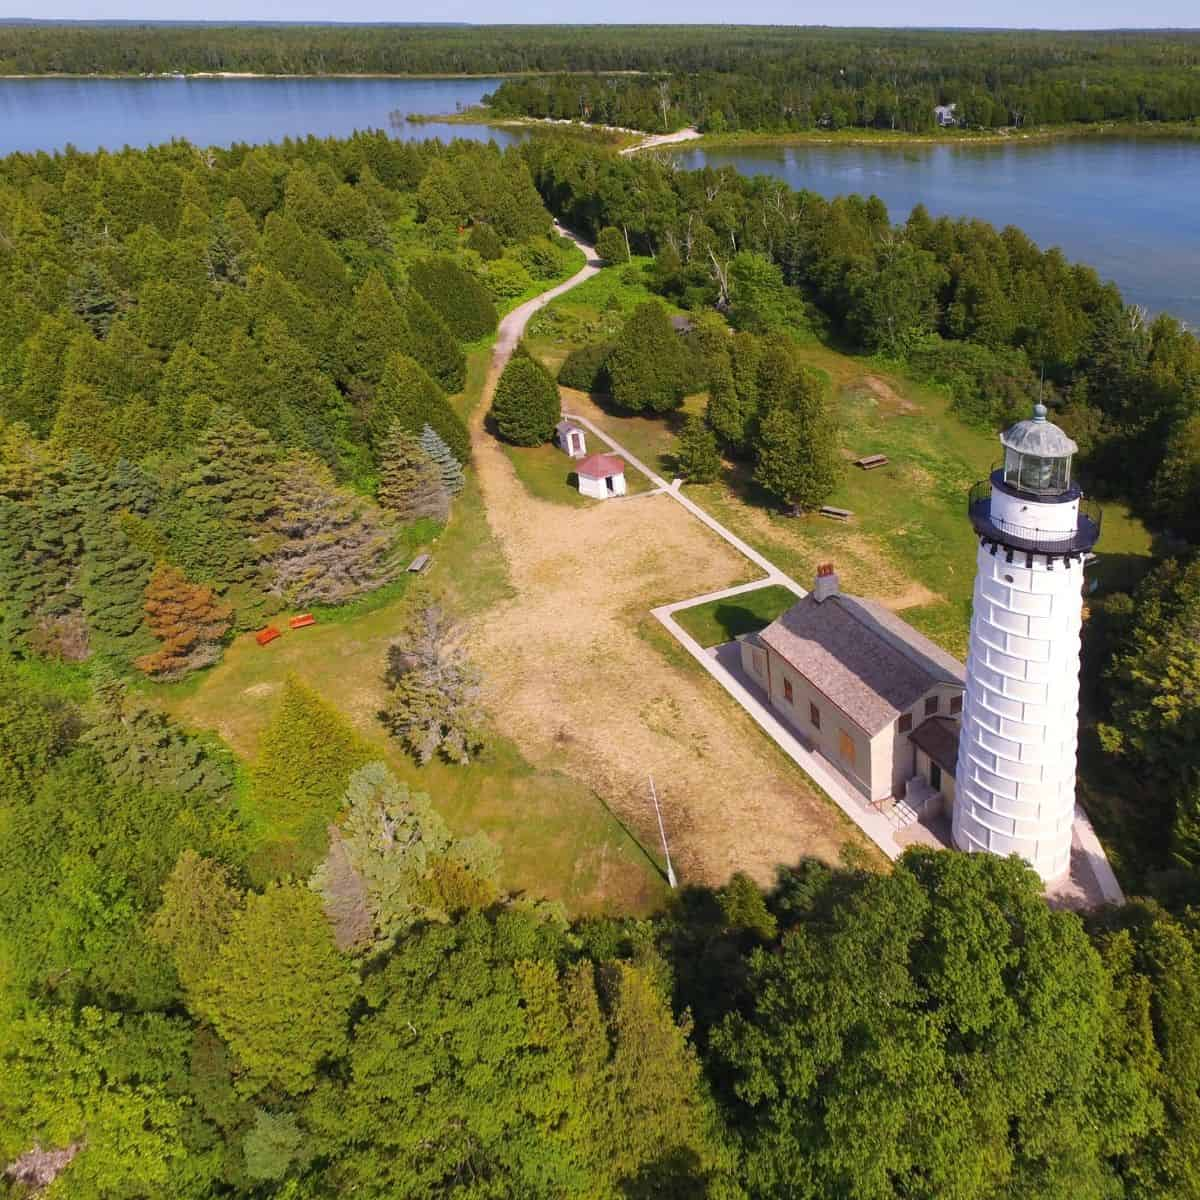 An aerial view of Canna Island Lighthouse with inland door county in the background.